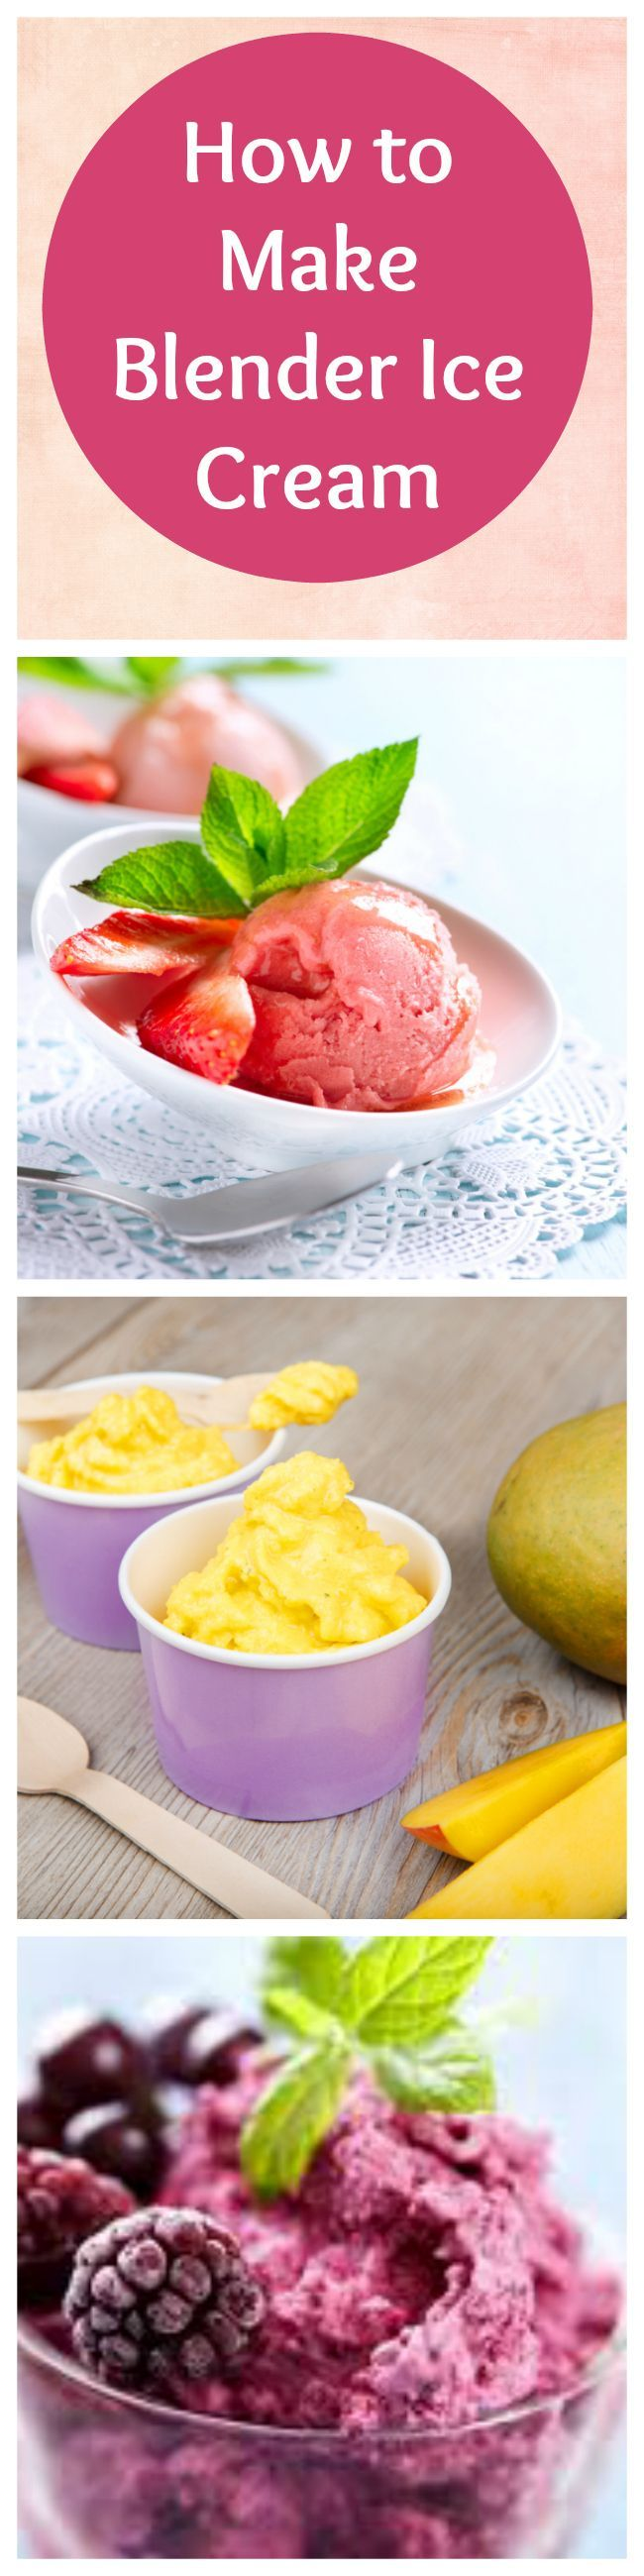 How to make healthy ice cream using your blender.